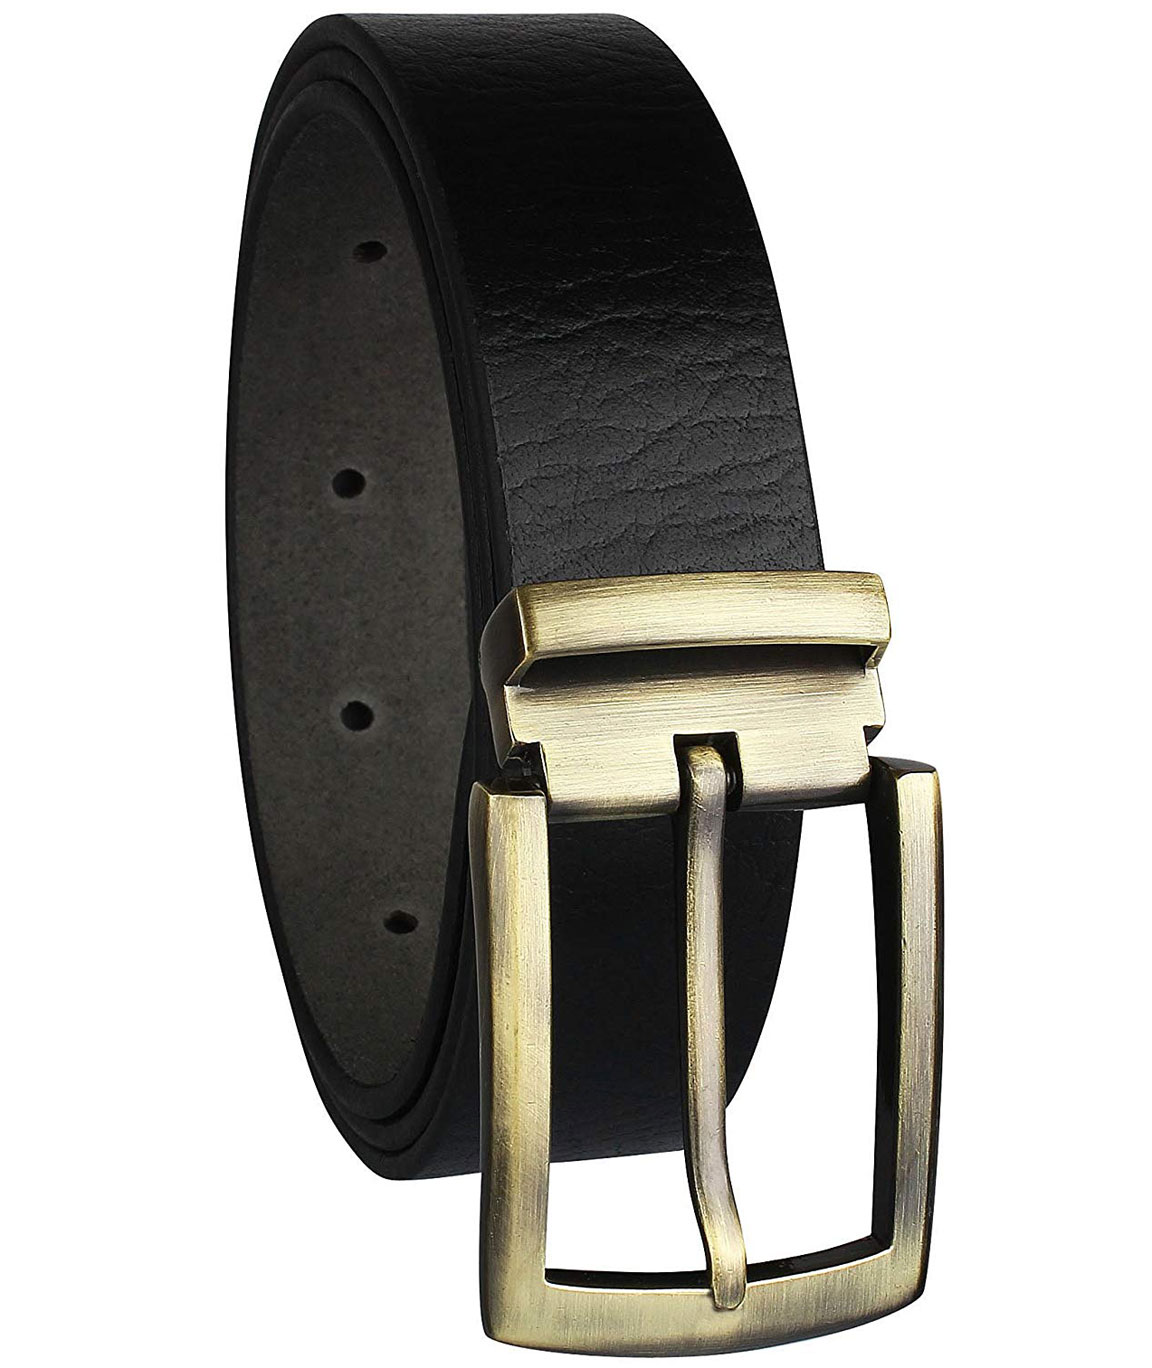 ZORO formal/casual black genuine leather belts for mens- 1 year guarantee, Gift for gents